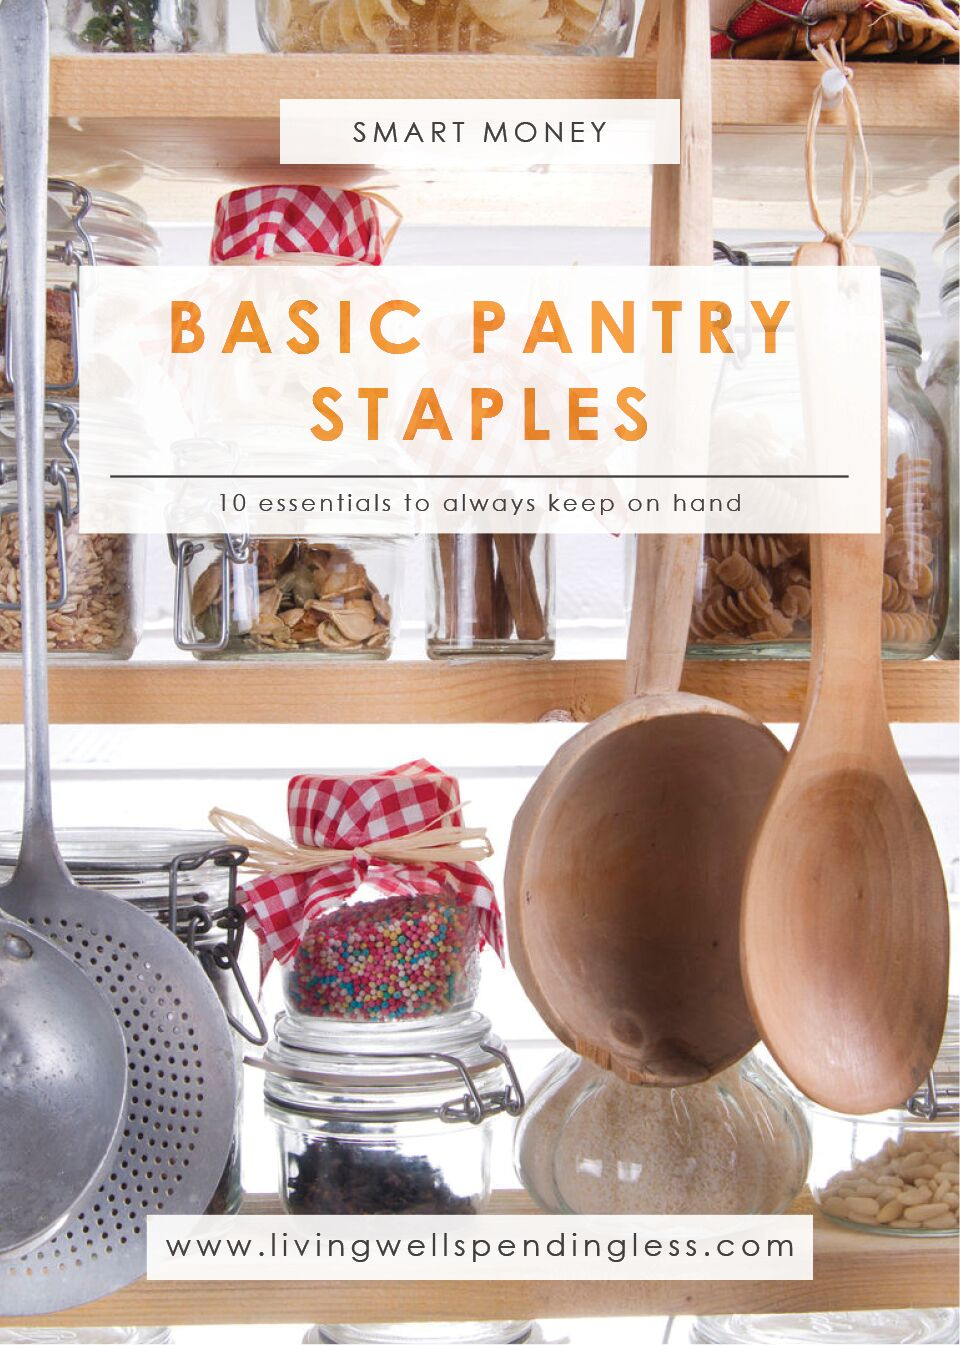 Pantry Staples to Keep on Hand | Budgeting 101 | Debt Free Living | In the Kitchen | Meal Planning | Money Saving Tips